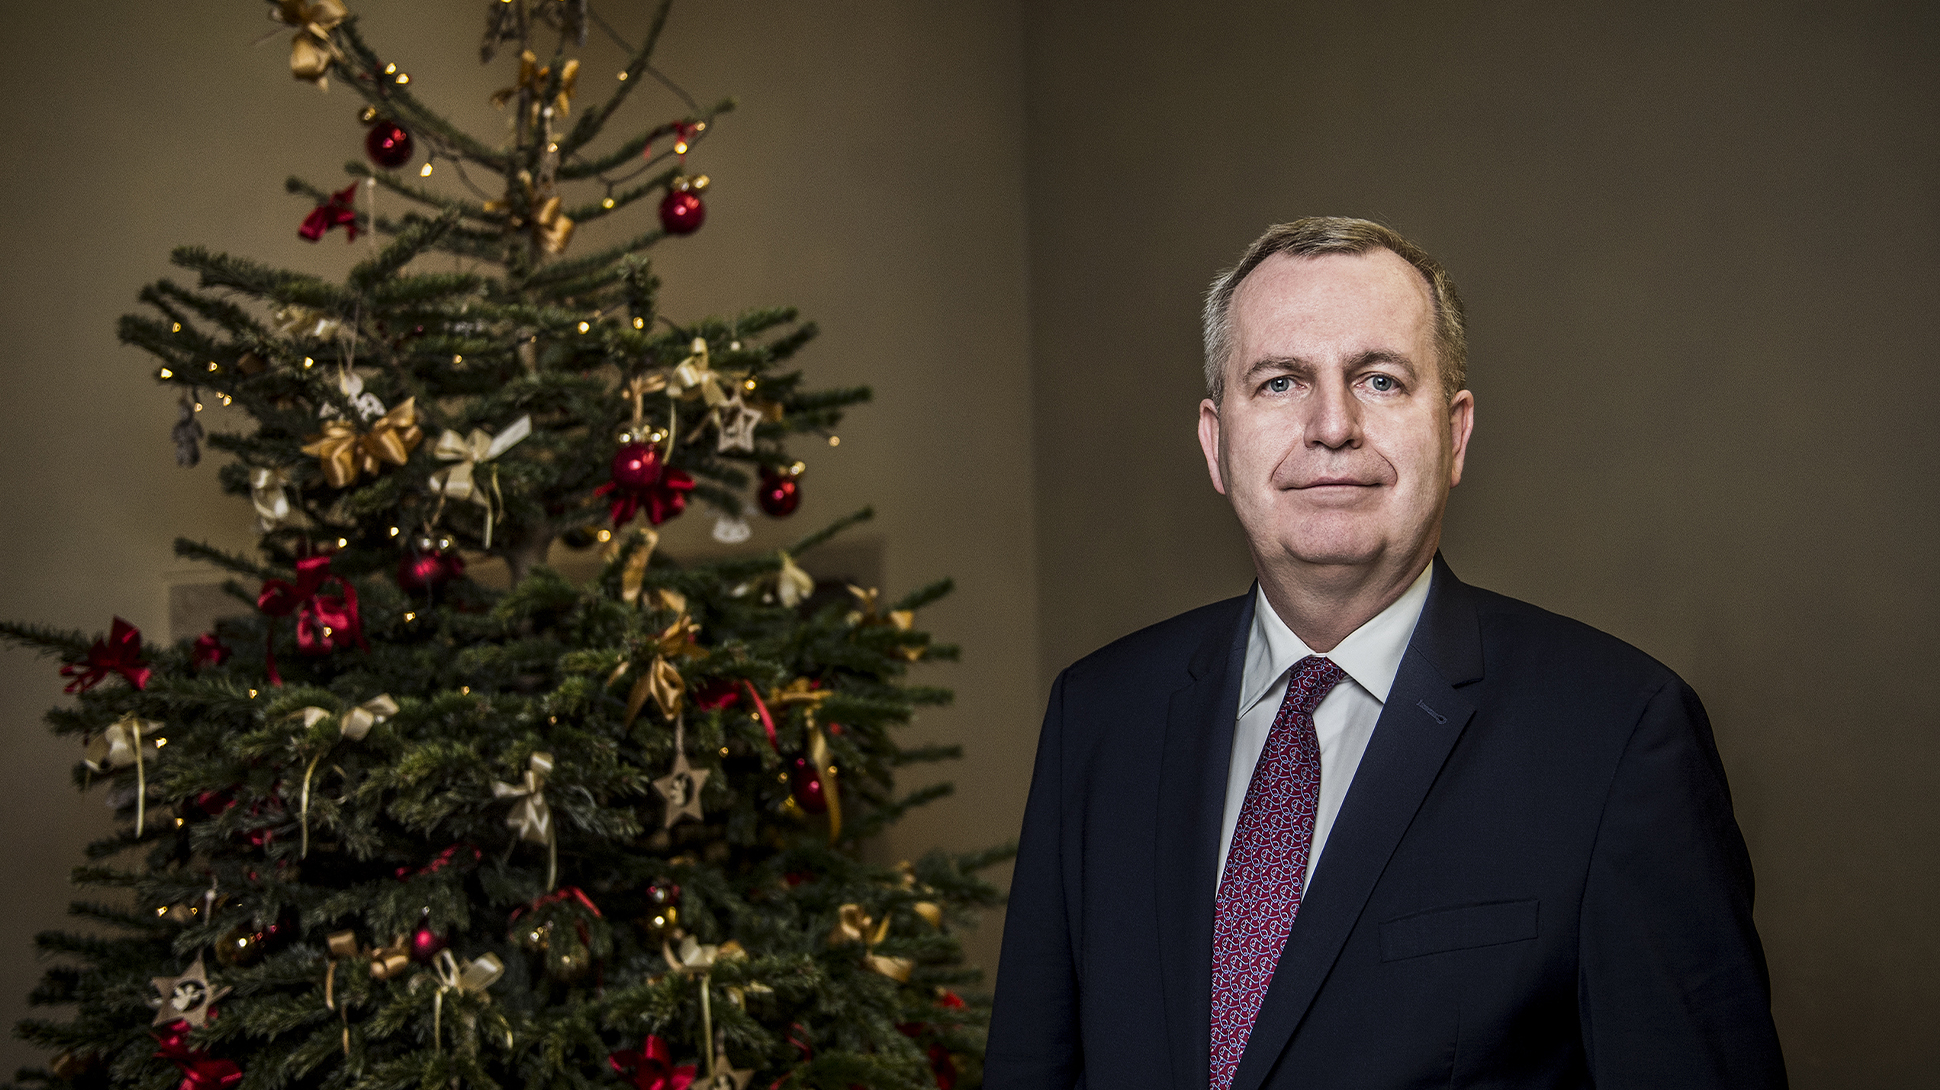 A Festive Word From the Rector of Charles University